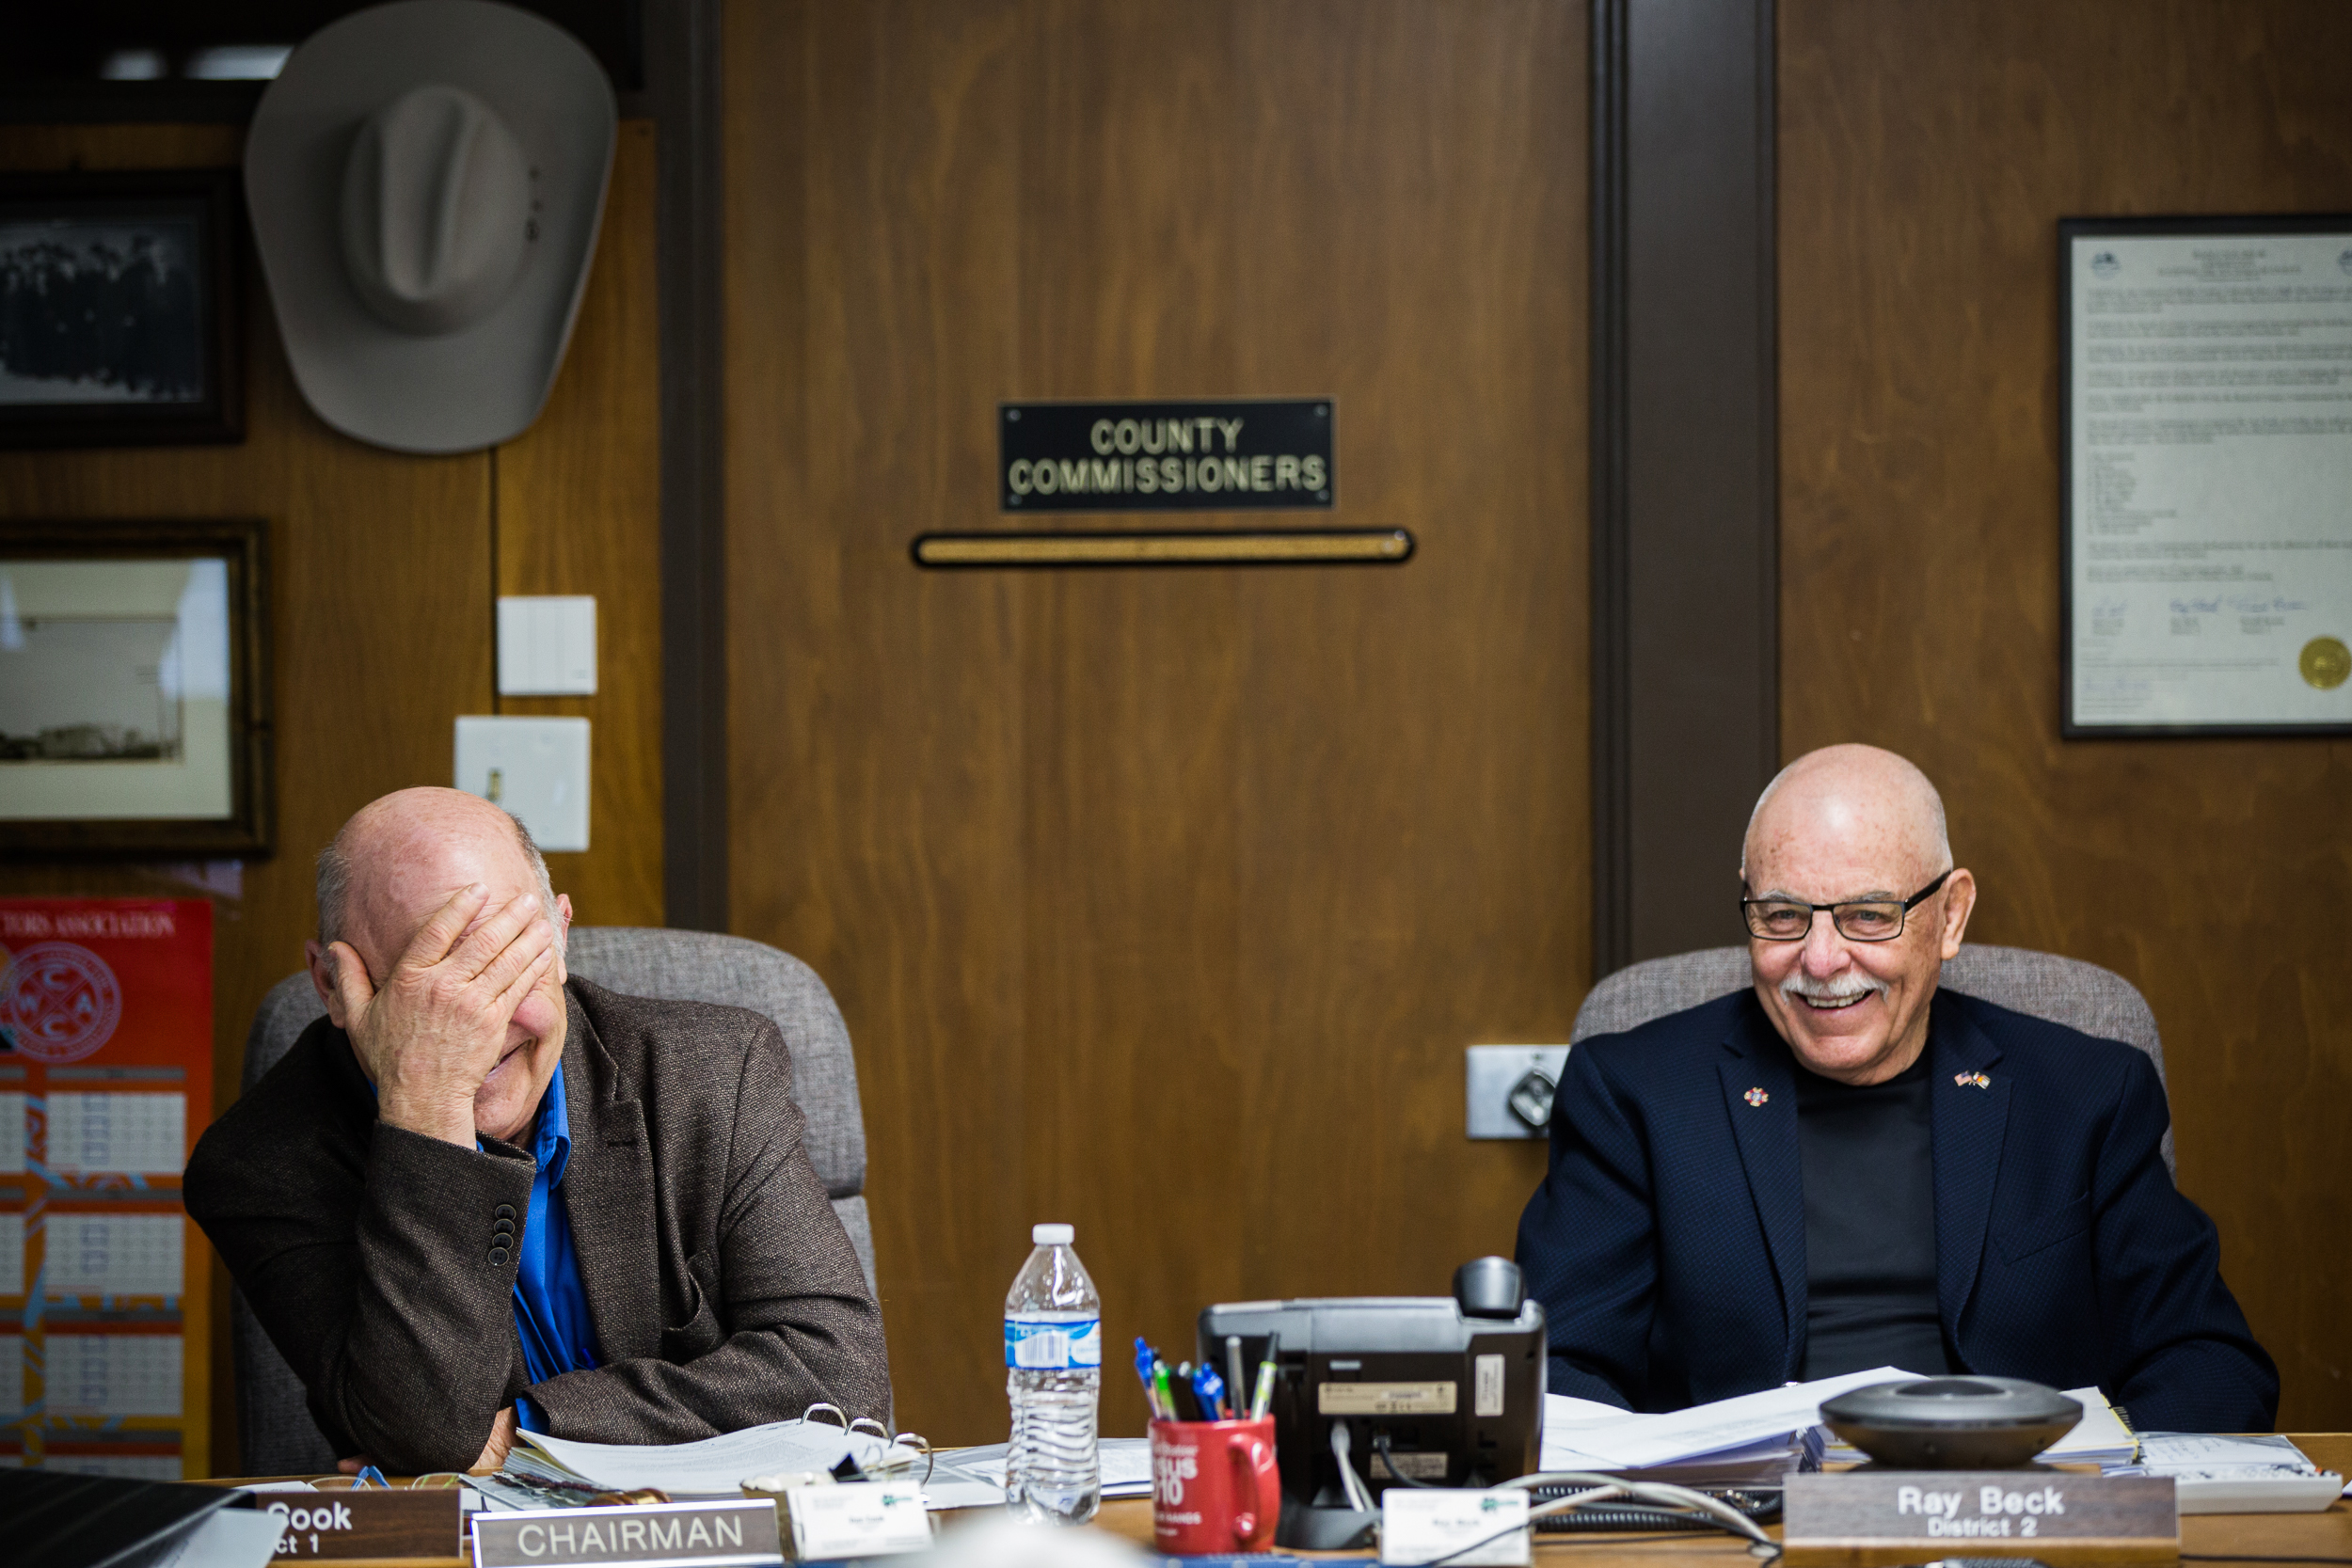 Craig Moffat County Commissioners Meeting Beck Cook